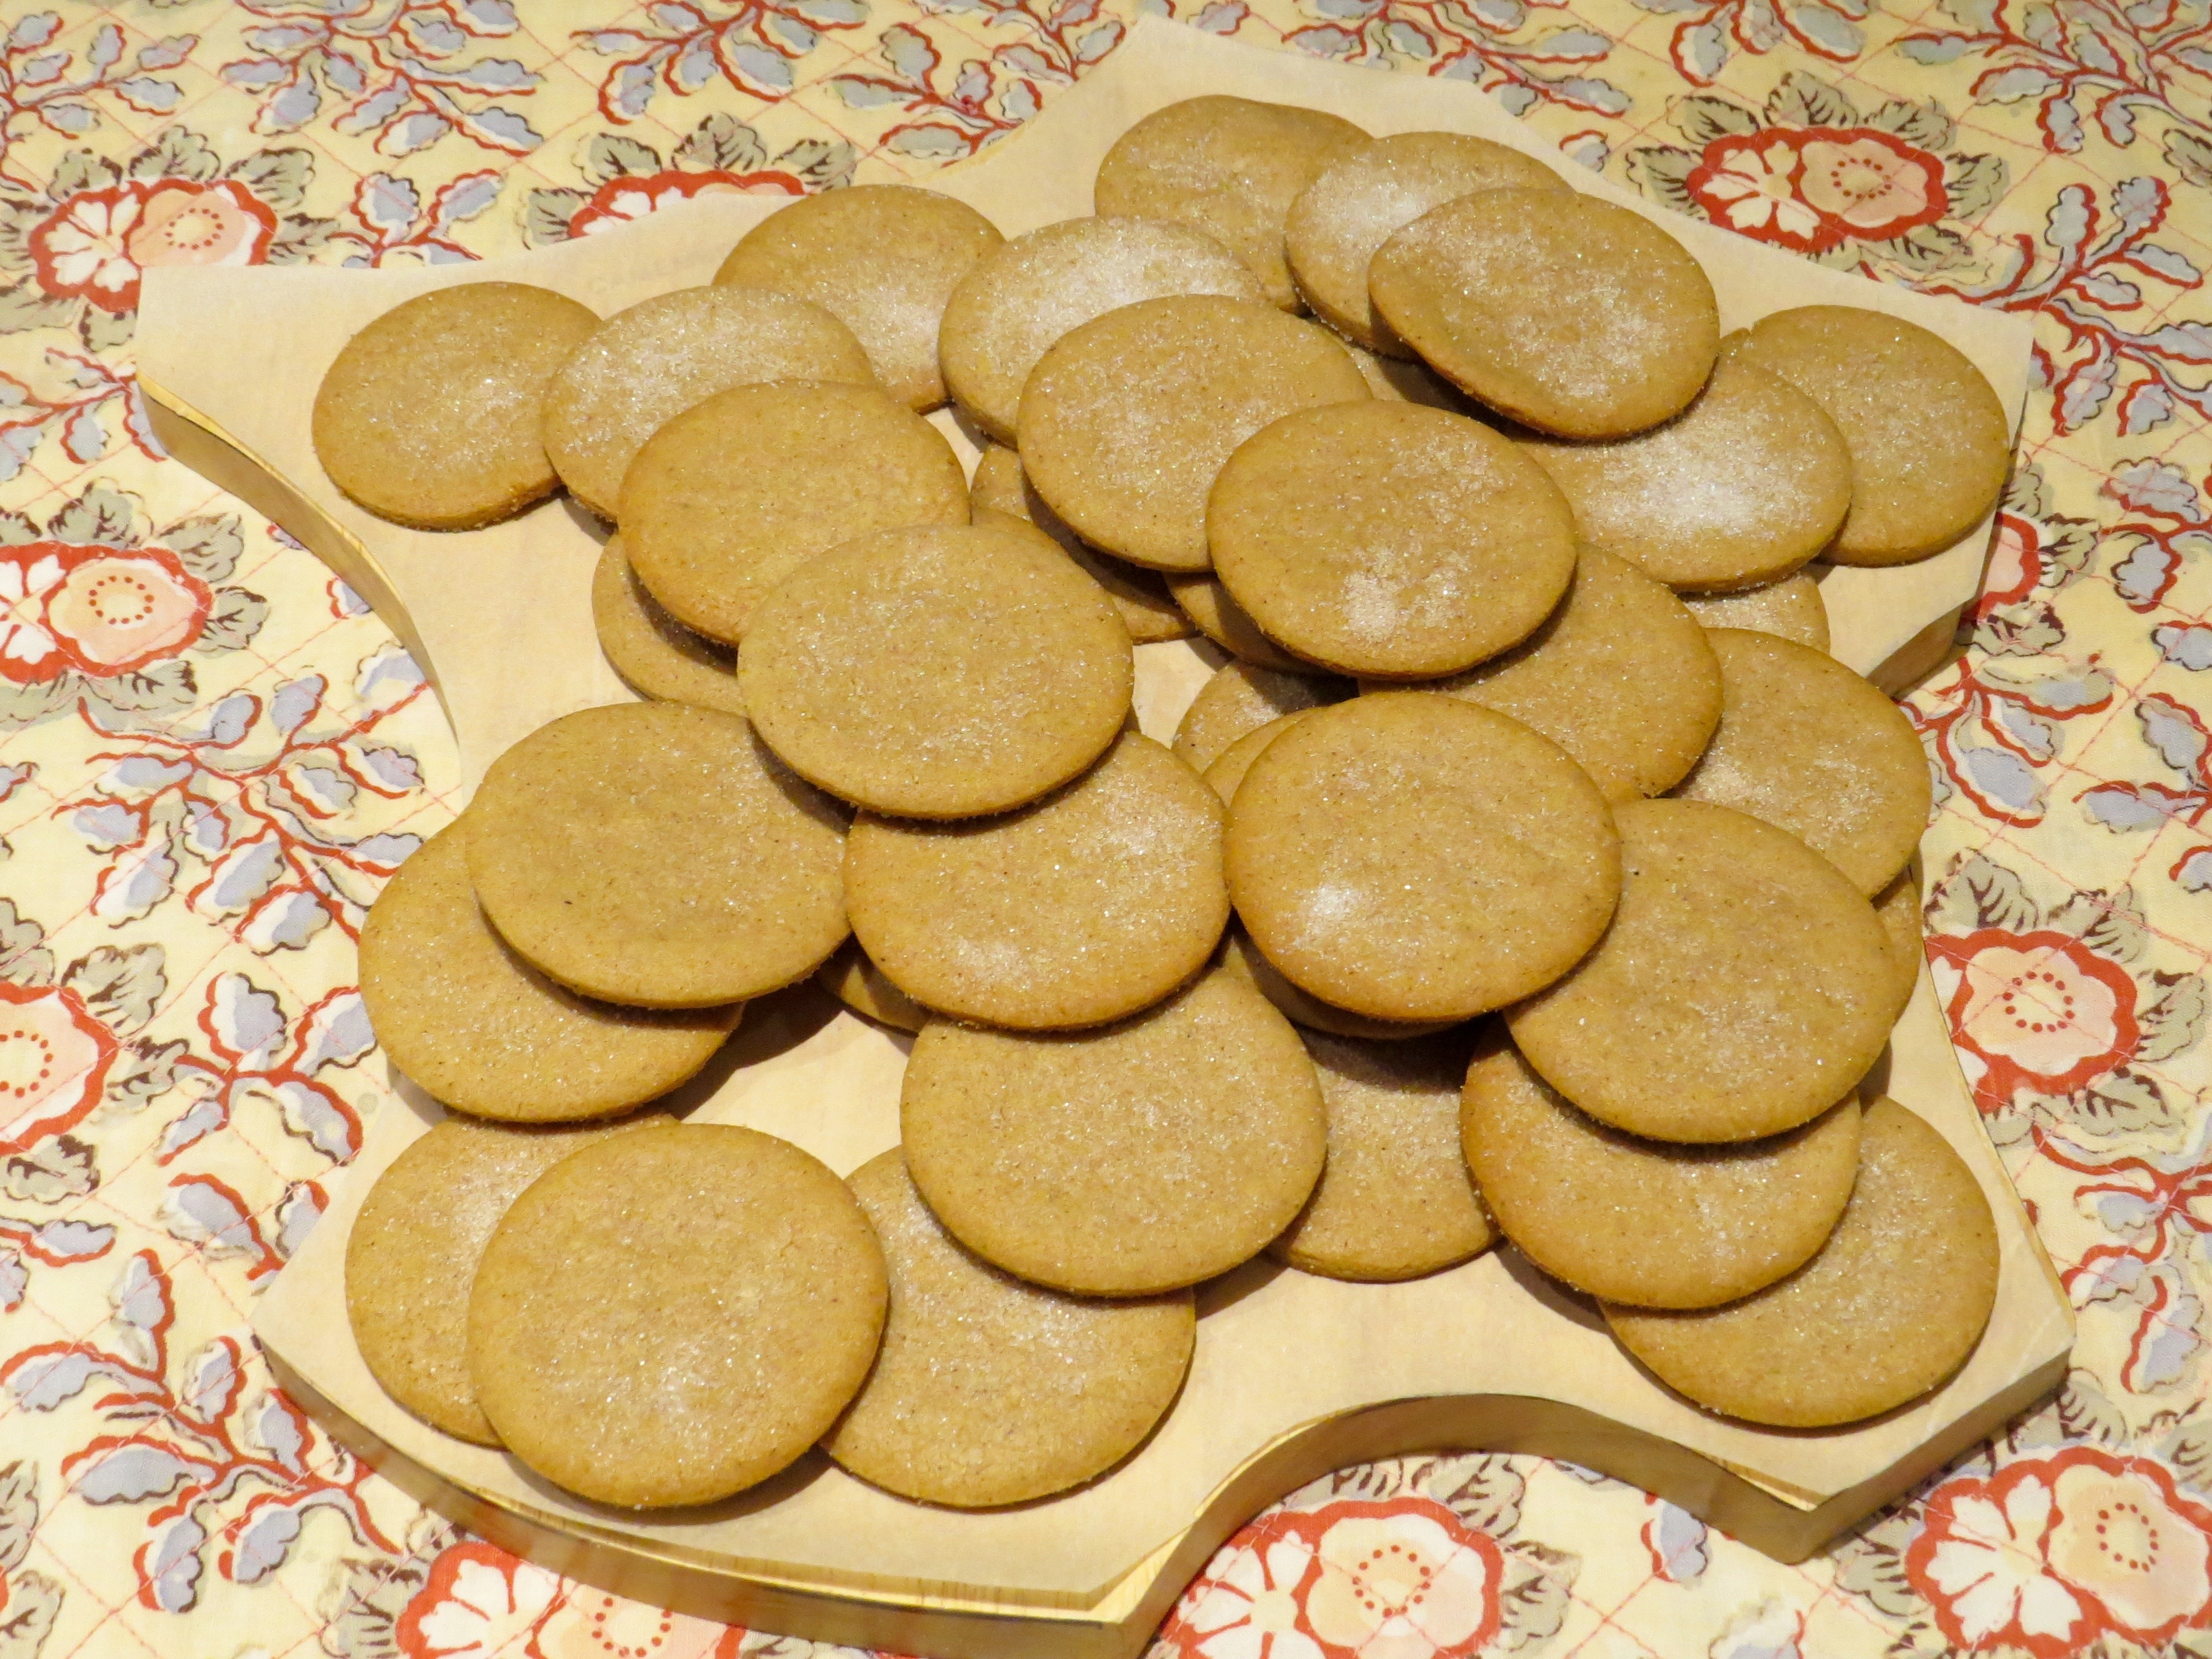 My Speculoos are ready to share at a potluck dinner.